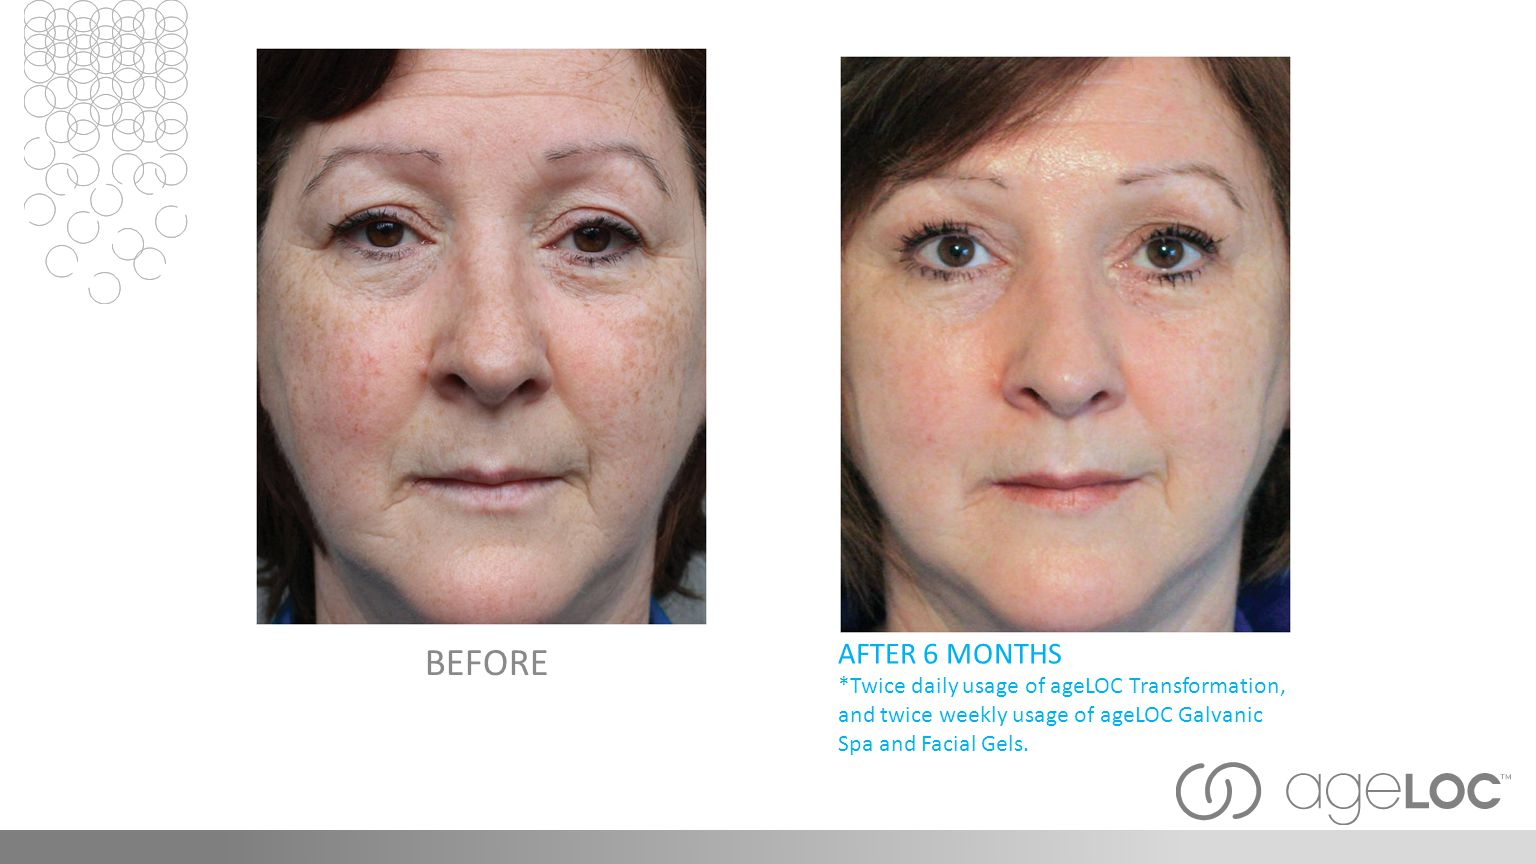 AFTER 6 MONTHS *Twice daily usage of ageLOC Transformation, and twice weekly usage of ageLOC Galvanic Spa and Facial Gels.